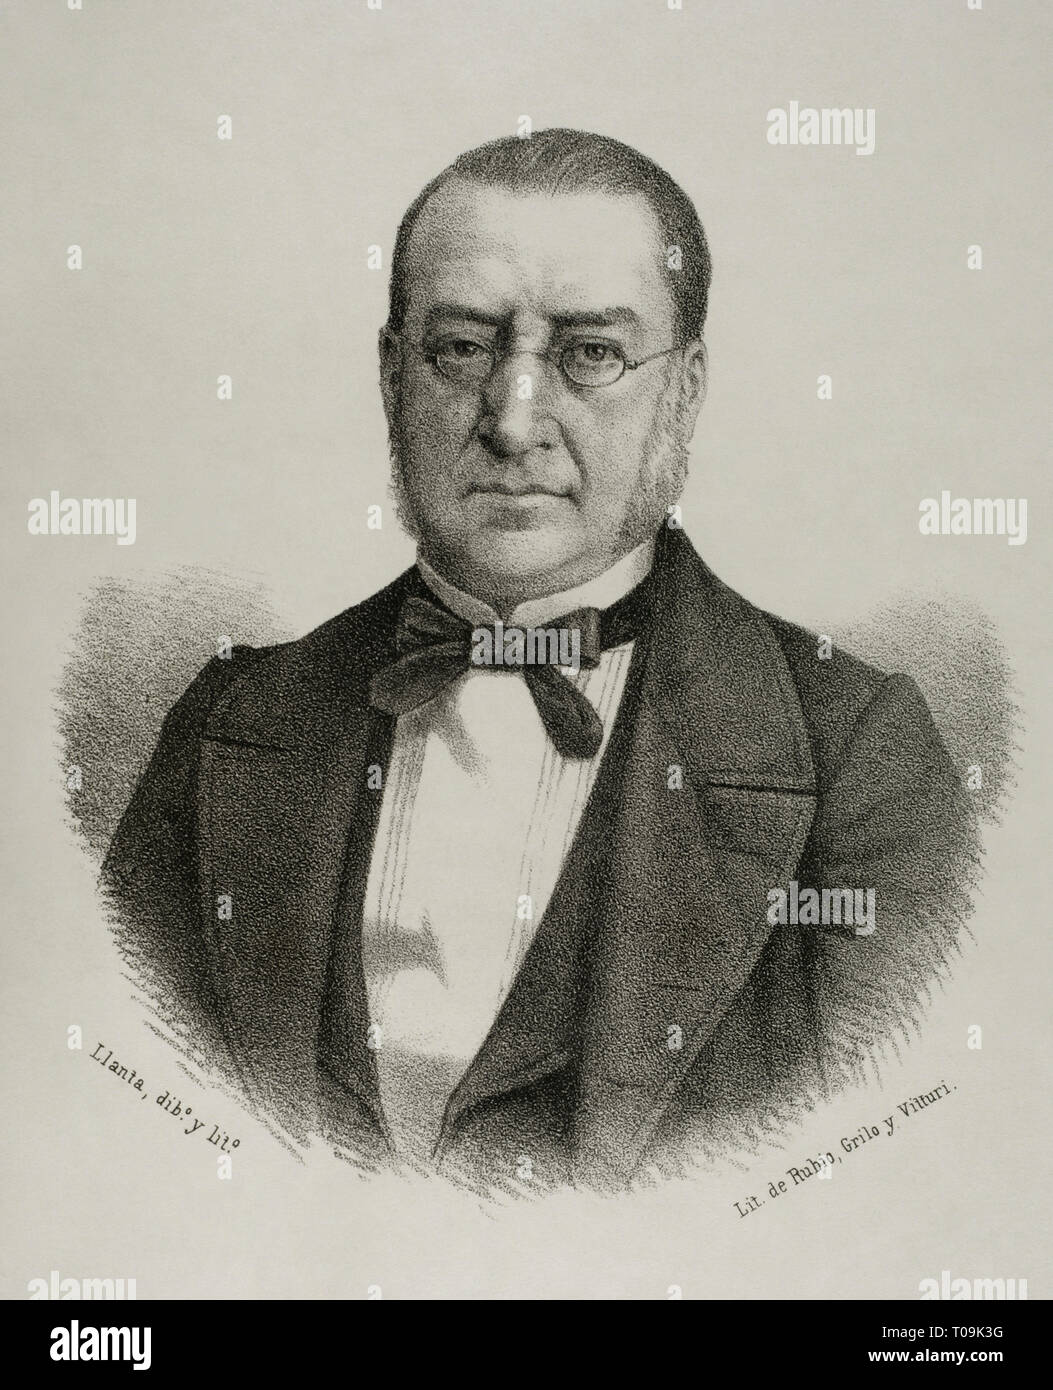 Rafael de Bustos y Castilla-Portugal, Marquis of Corvera (1807-1894). Politician and Spanish aristocrat. He was Deputy in Courts for Murcia during 26 years. As governor of Madrid, he built the Casa de la Moneda. Minister of Development during the reign of Isabel II. Lithography. Drawing by Llanta. Cronica General de España, Historia Ilustrada y Descriptiva de sus Provincias. Murcia, 1870. - Stock Image